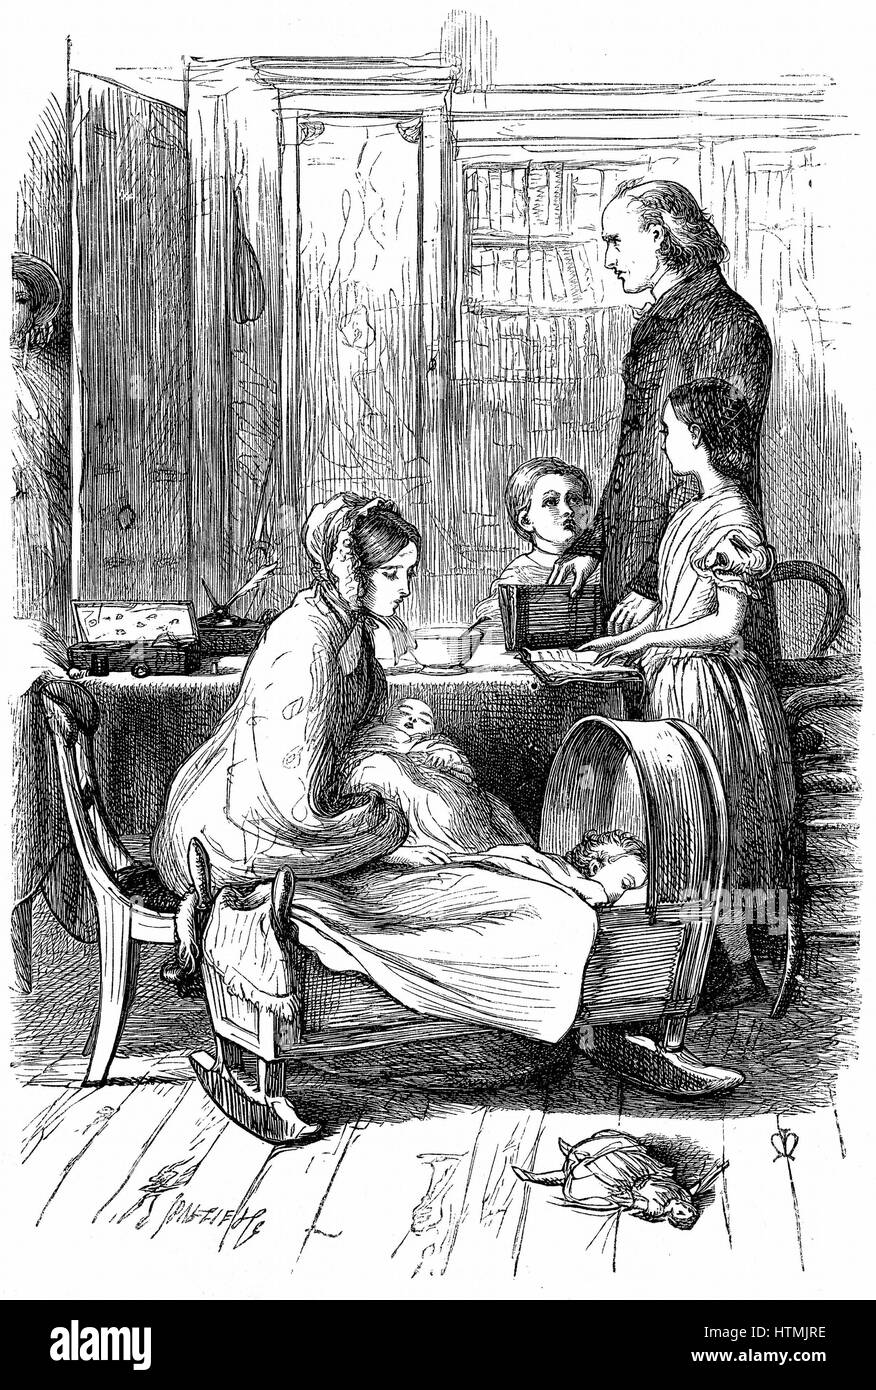 The Rev. and Mrs Crawley and their young family which, as an impoverished parson, he had difficulty in supporting. Stock Photo